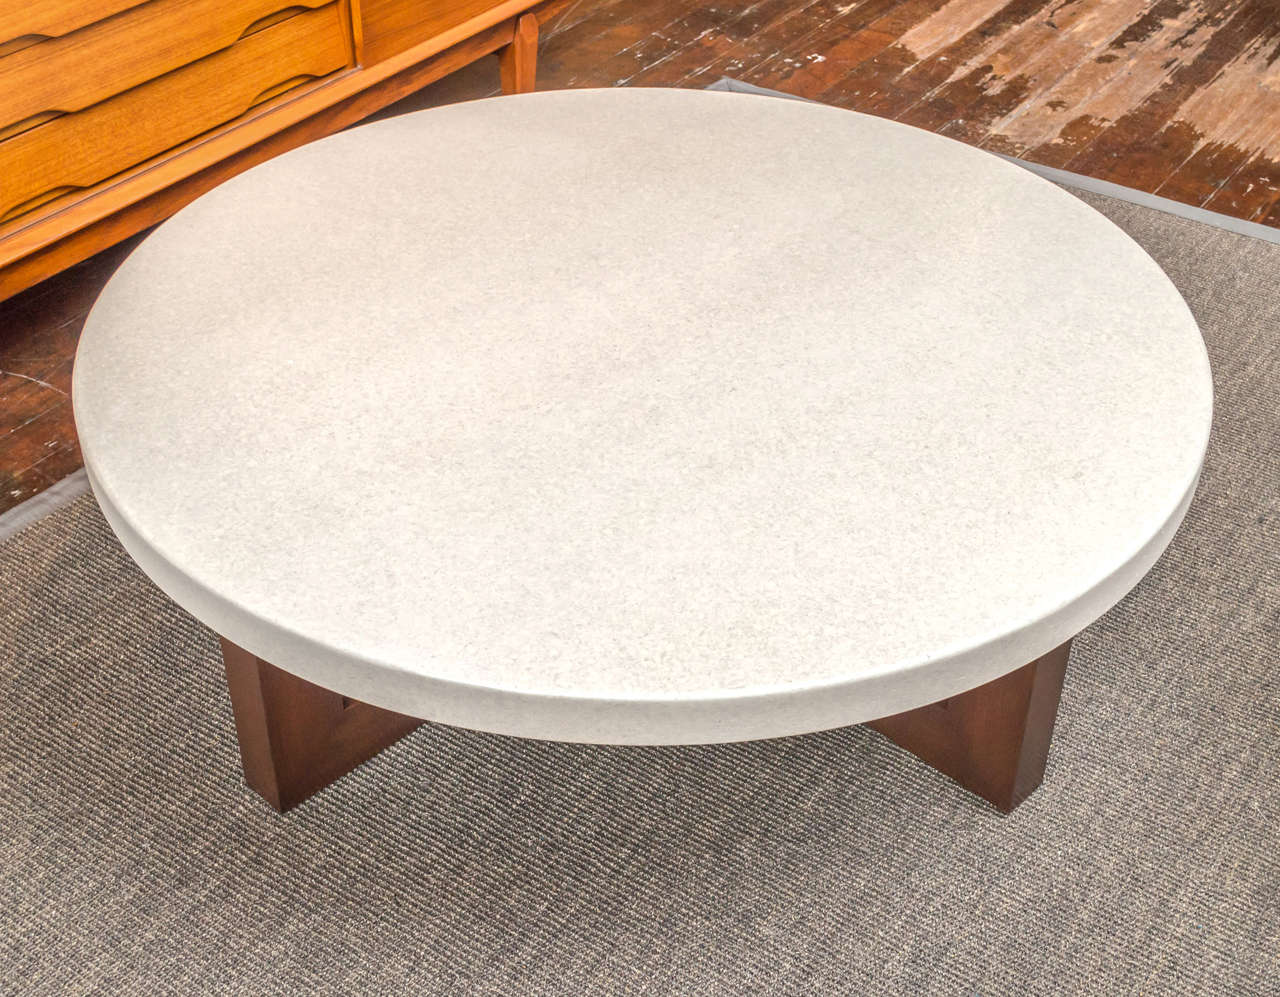 Paul frankl cork coffee table at 1stdibs paul frankl cork coffee table 3 geotapseo Gallery